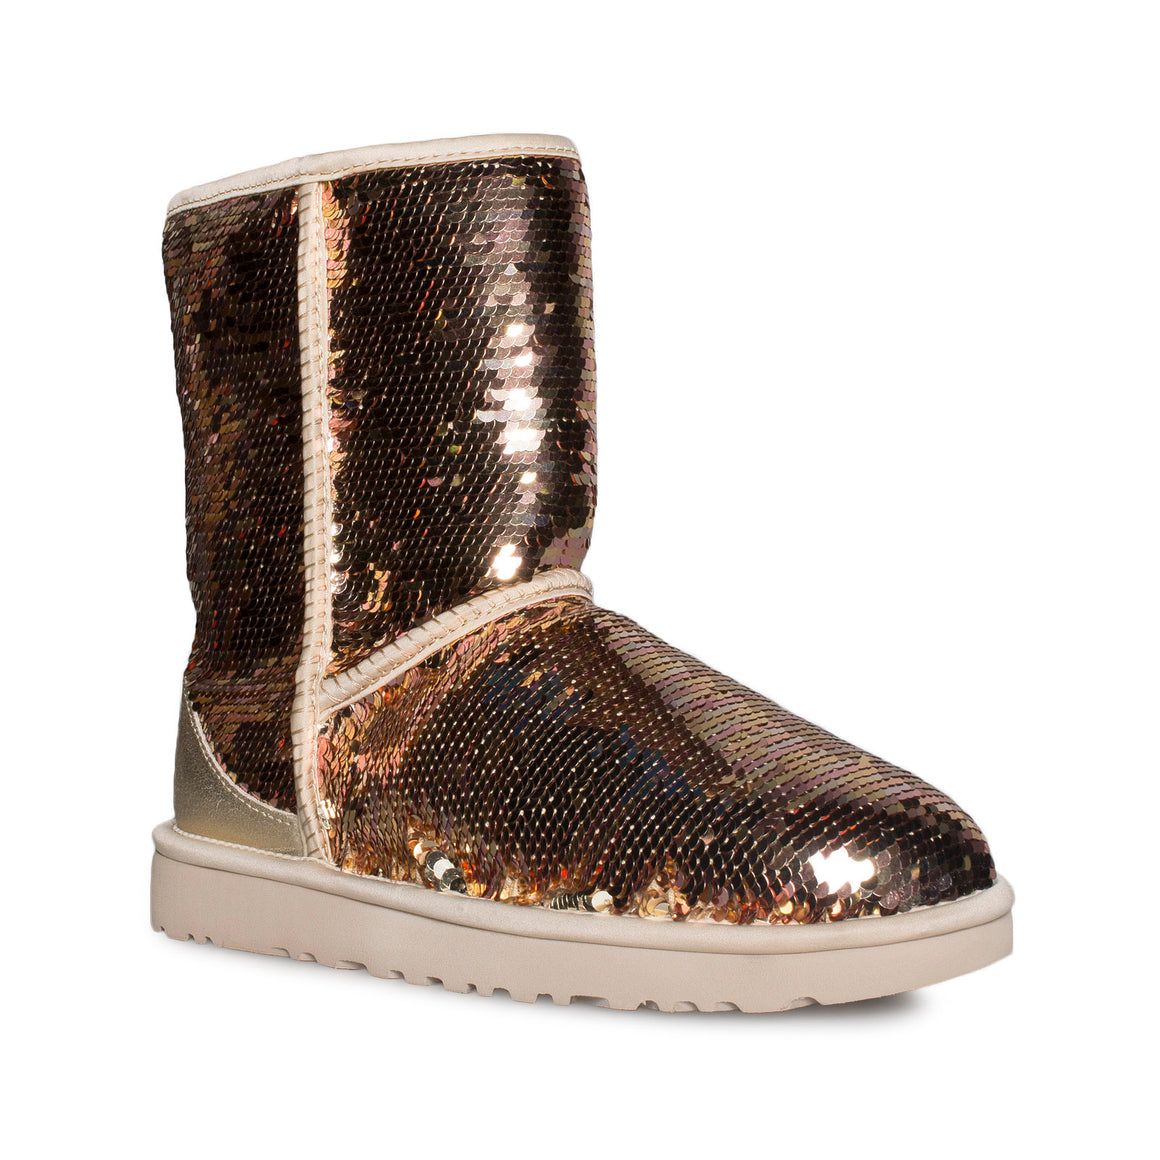 UGG Classic Short Sequin Gold Combo Boots - Women's